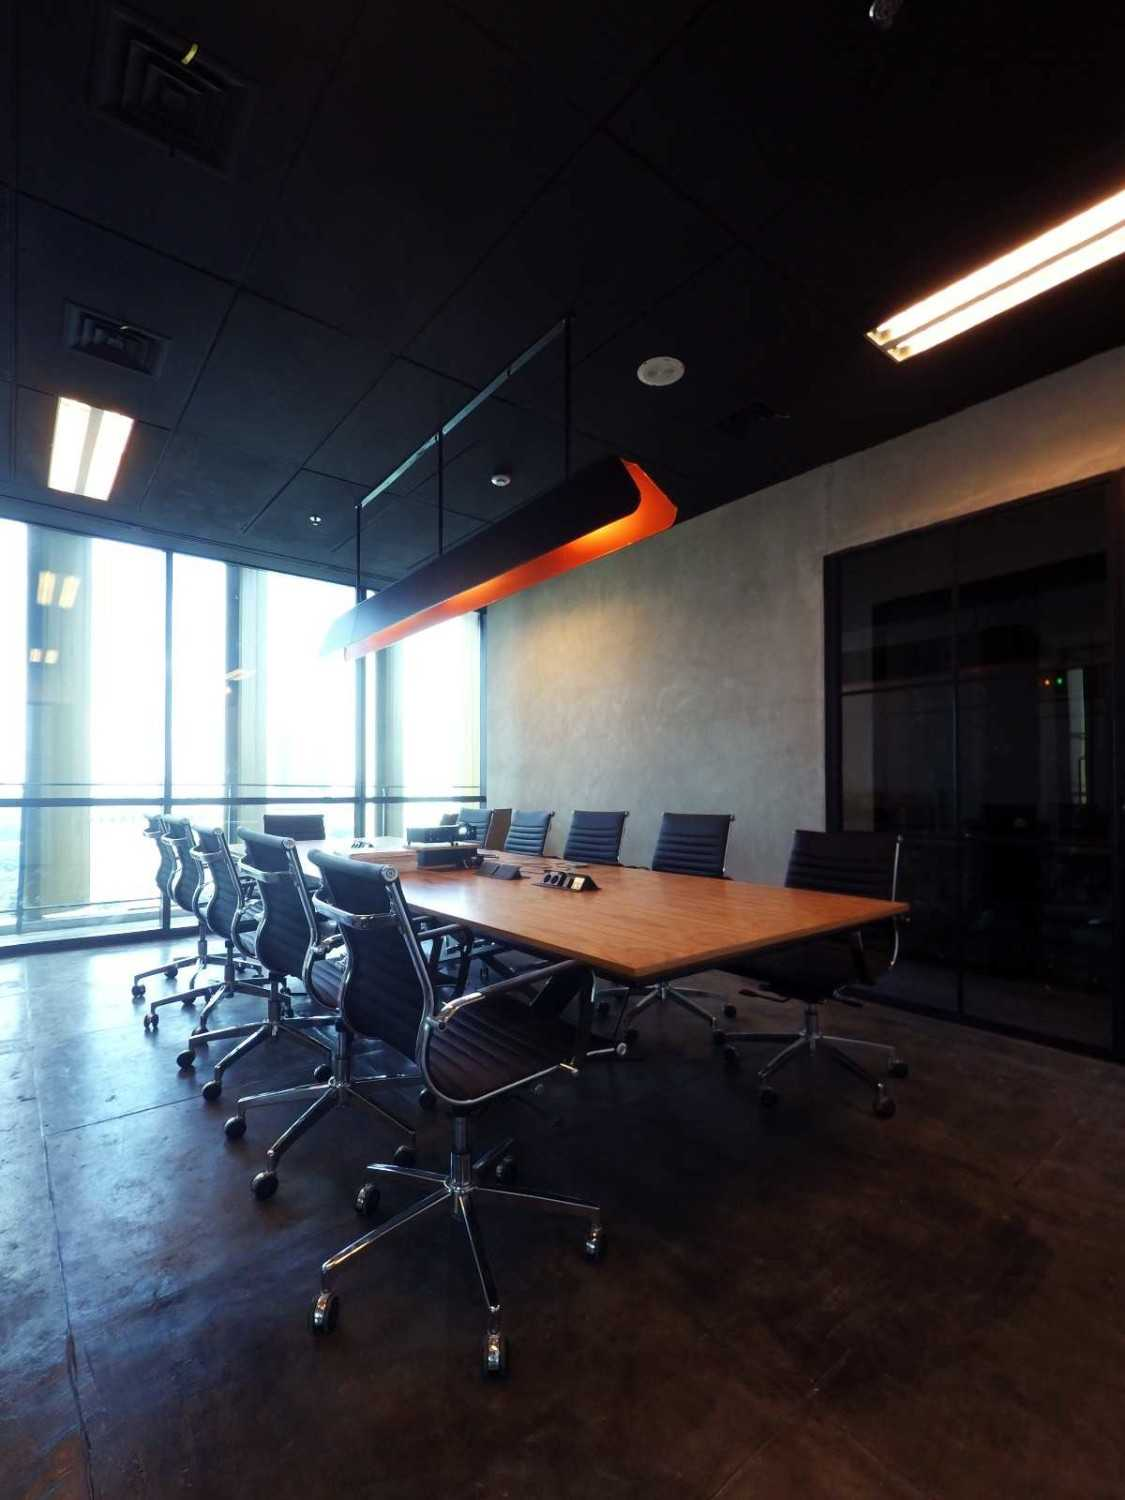 Foto inspirasi ide desain ruang meeting industrial Meeting room oleh Arkadia Works di Arsitag